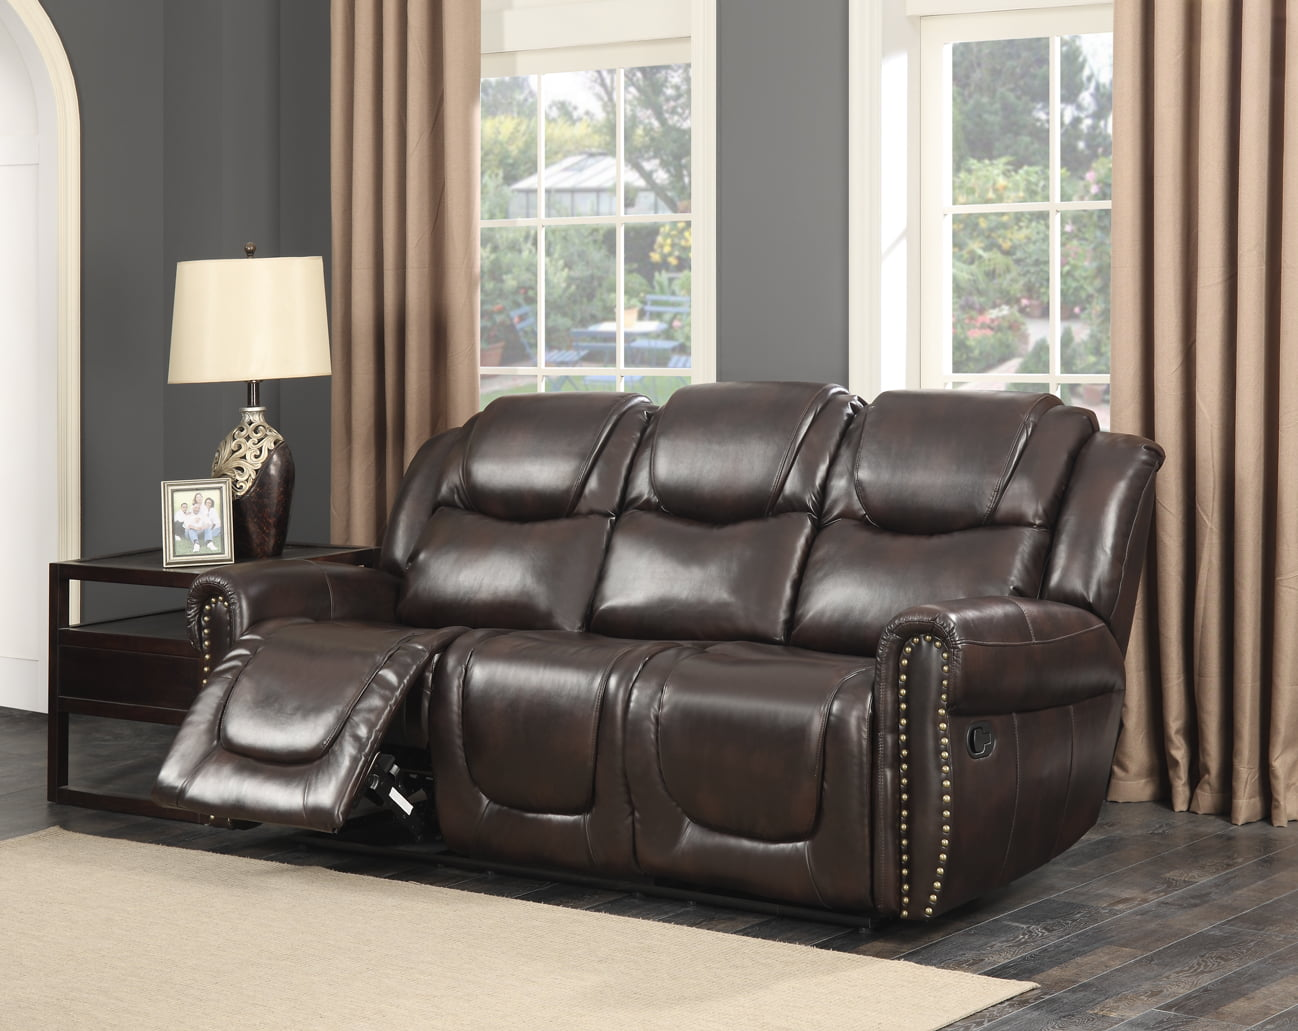 Savannah Dark Brown Bonded Leather Living Room Reclining Sofa ...